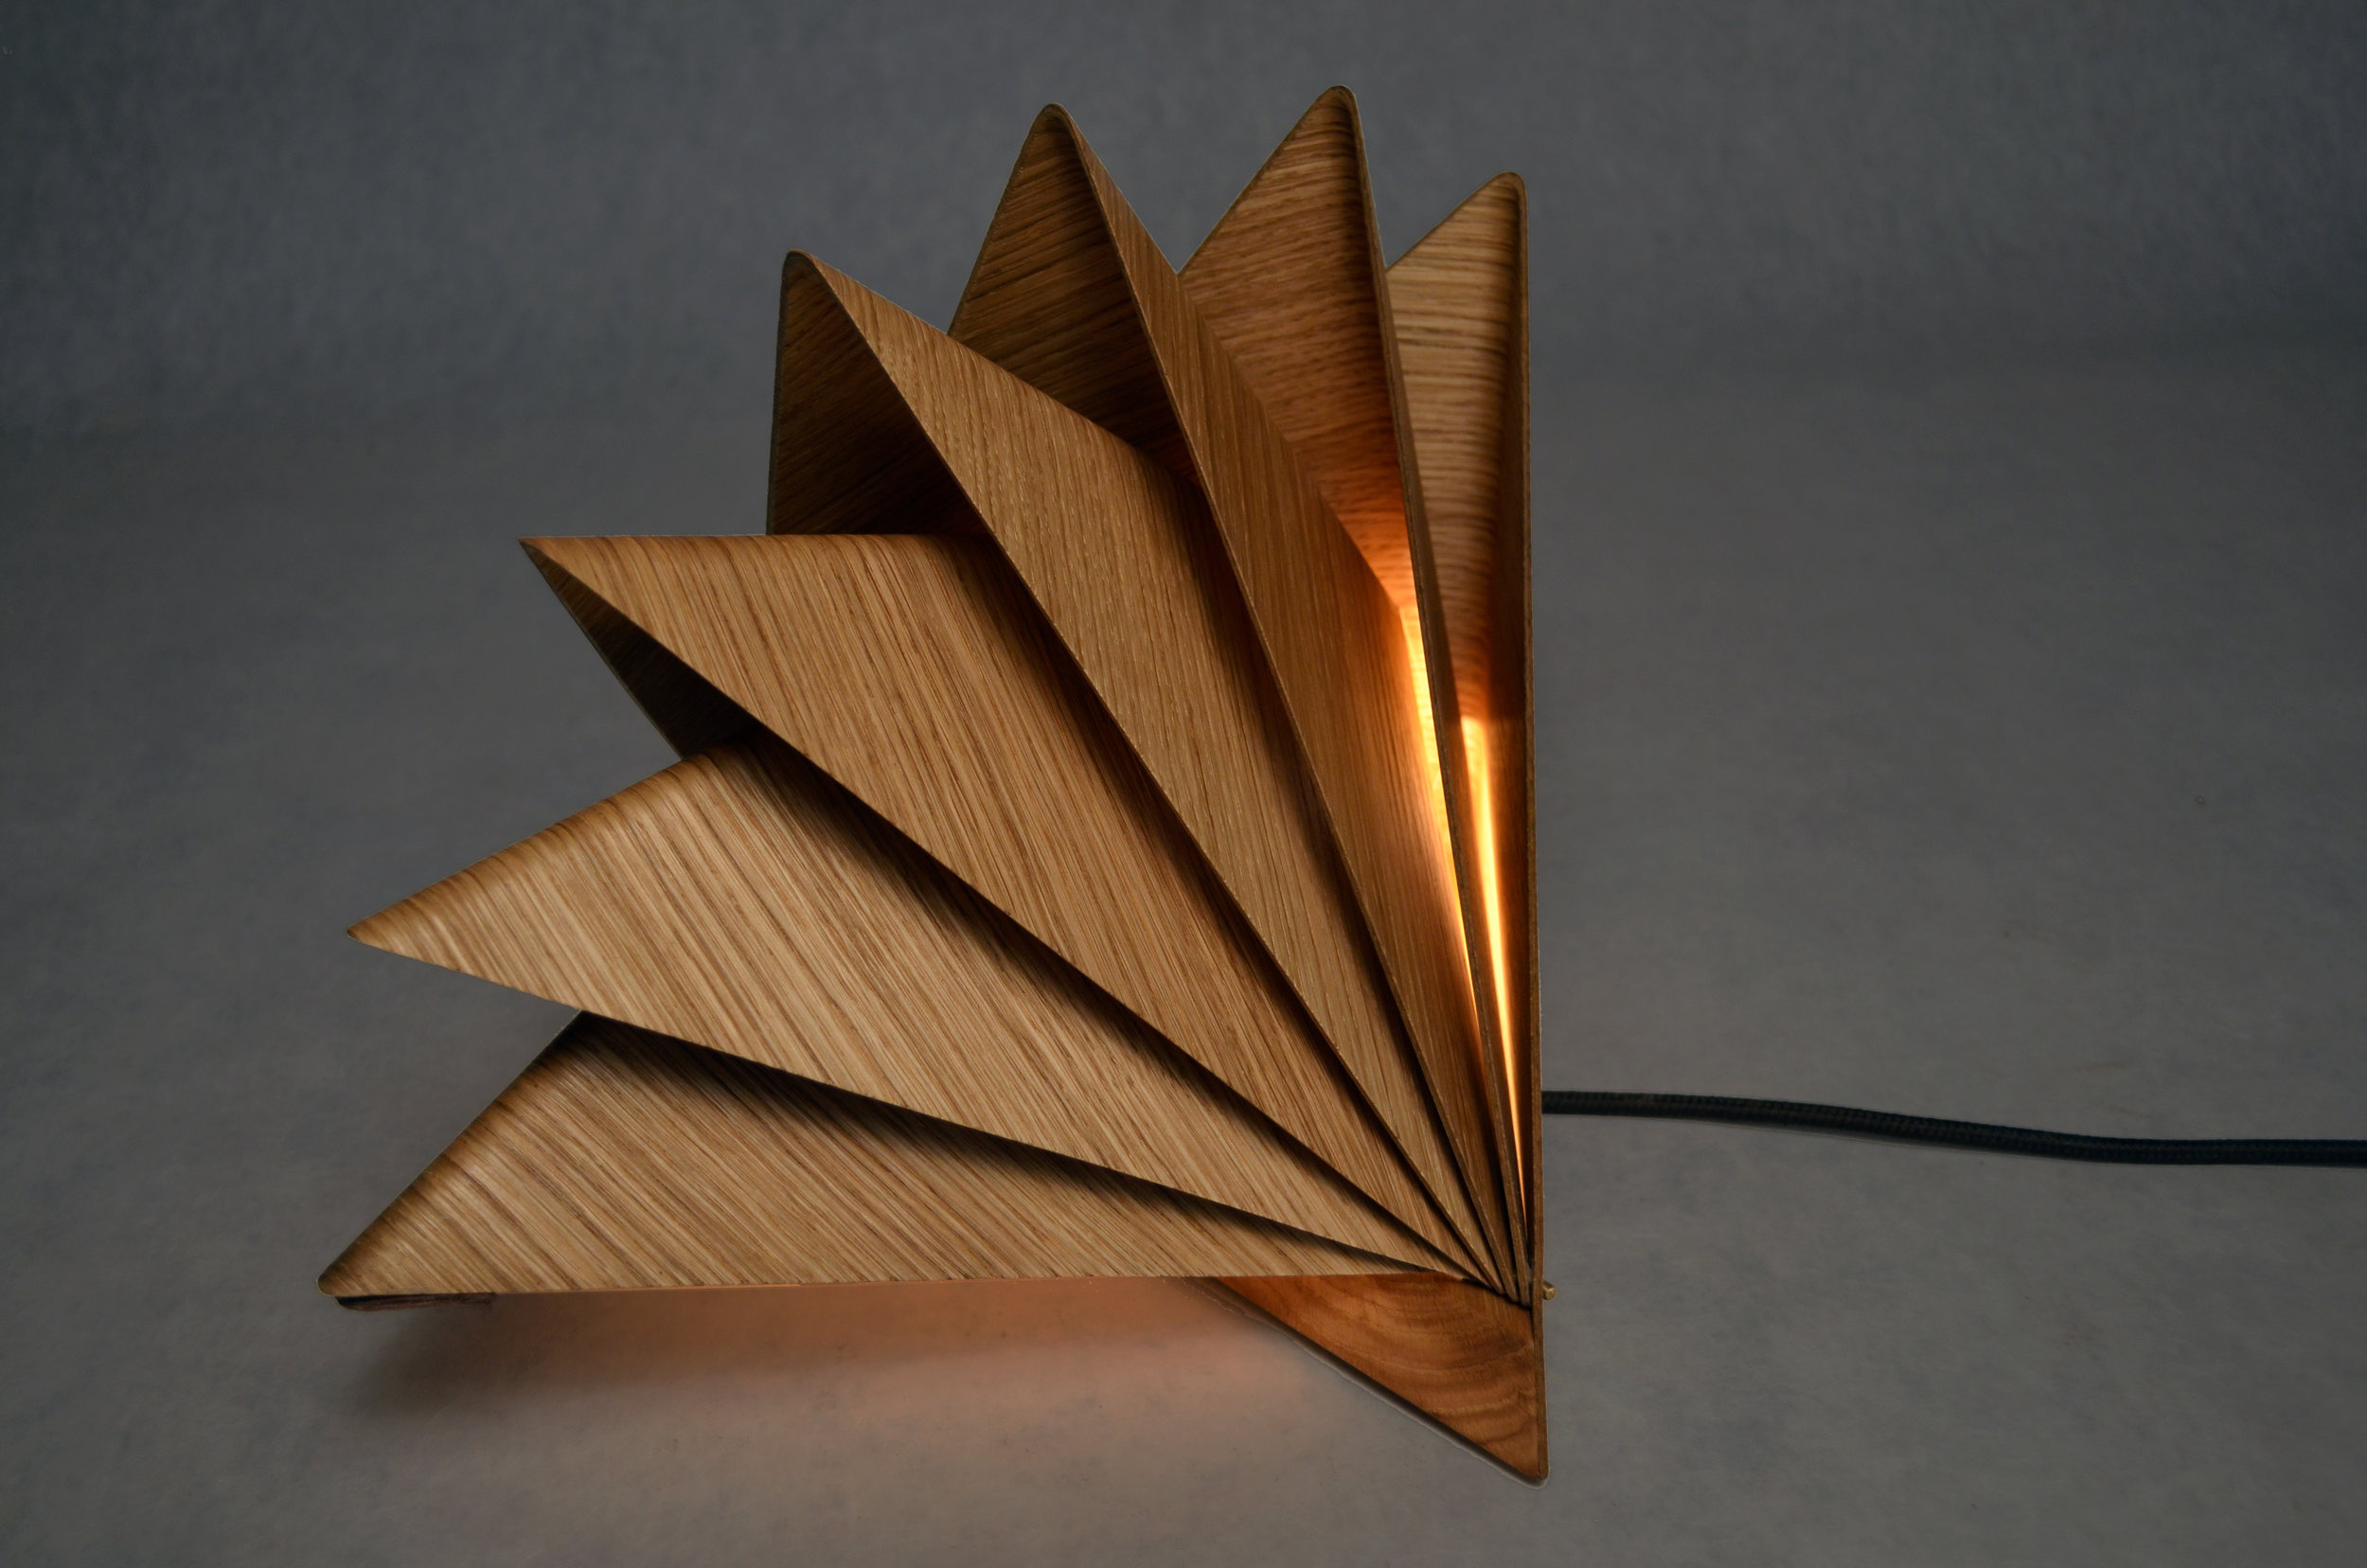 Klara Varosy  , Bloom , 2016.Solid oak, oak veneer, Plexiglas, leather, brass hardware, LED bulb & components.Closed: 9 1/4 x 13 1/4 x 8 1/2 in.Open: 15 x 13 1/4 x 10 in.Courtesy of the Artist.2016.KV.01. Photo: Courtesy of the Artist   METHOD: CNC (Computer Numerical Control router), laser cut, laser engraved, wet-bent, vacuum formed, handcrafted